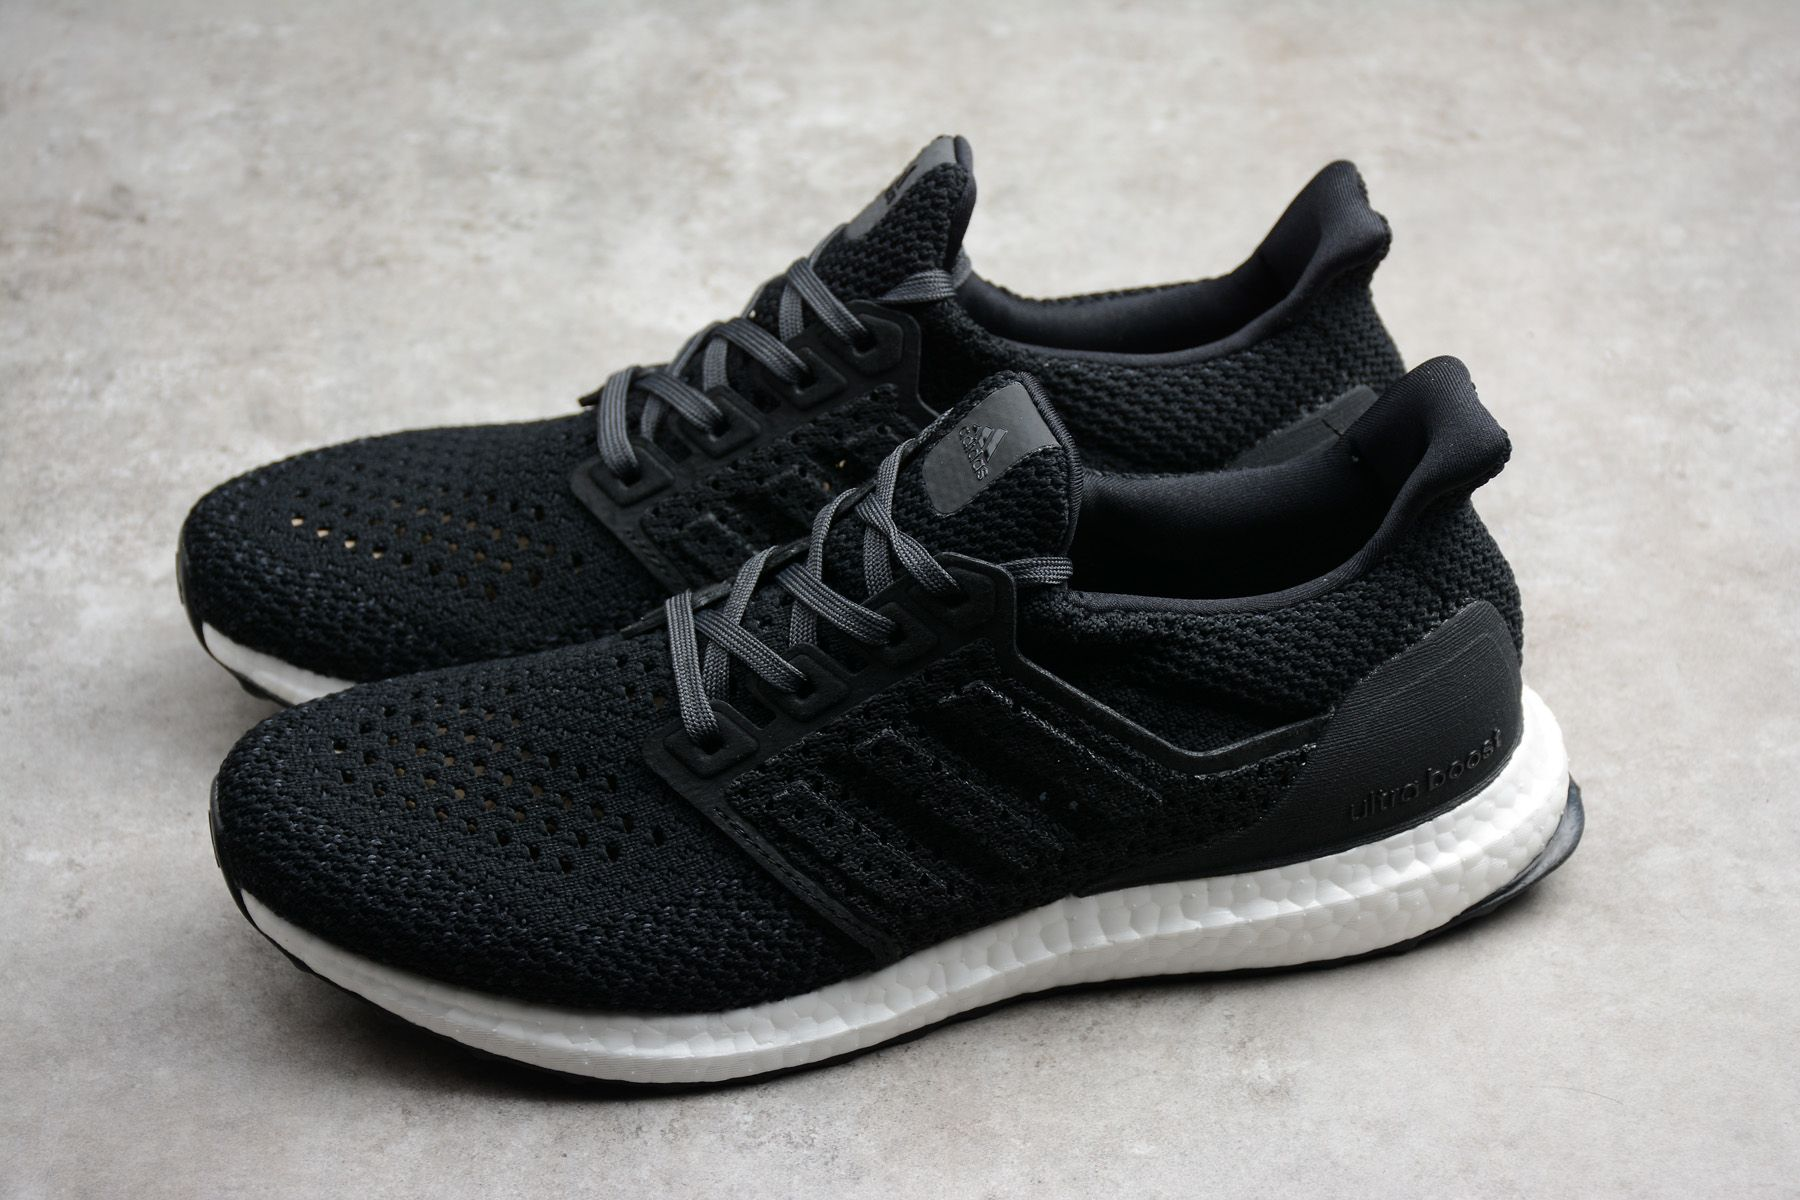 5ac5e39c5fa7e adidas Ultra Boost Clima 4.0 Black White CQ7081 For Sale Online